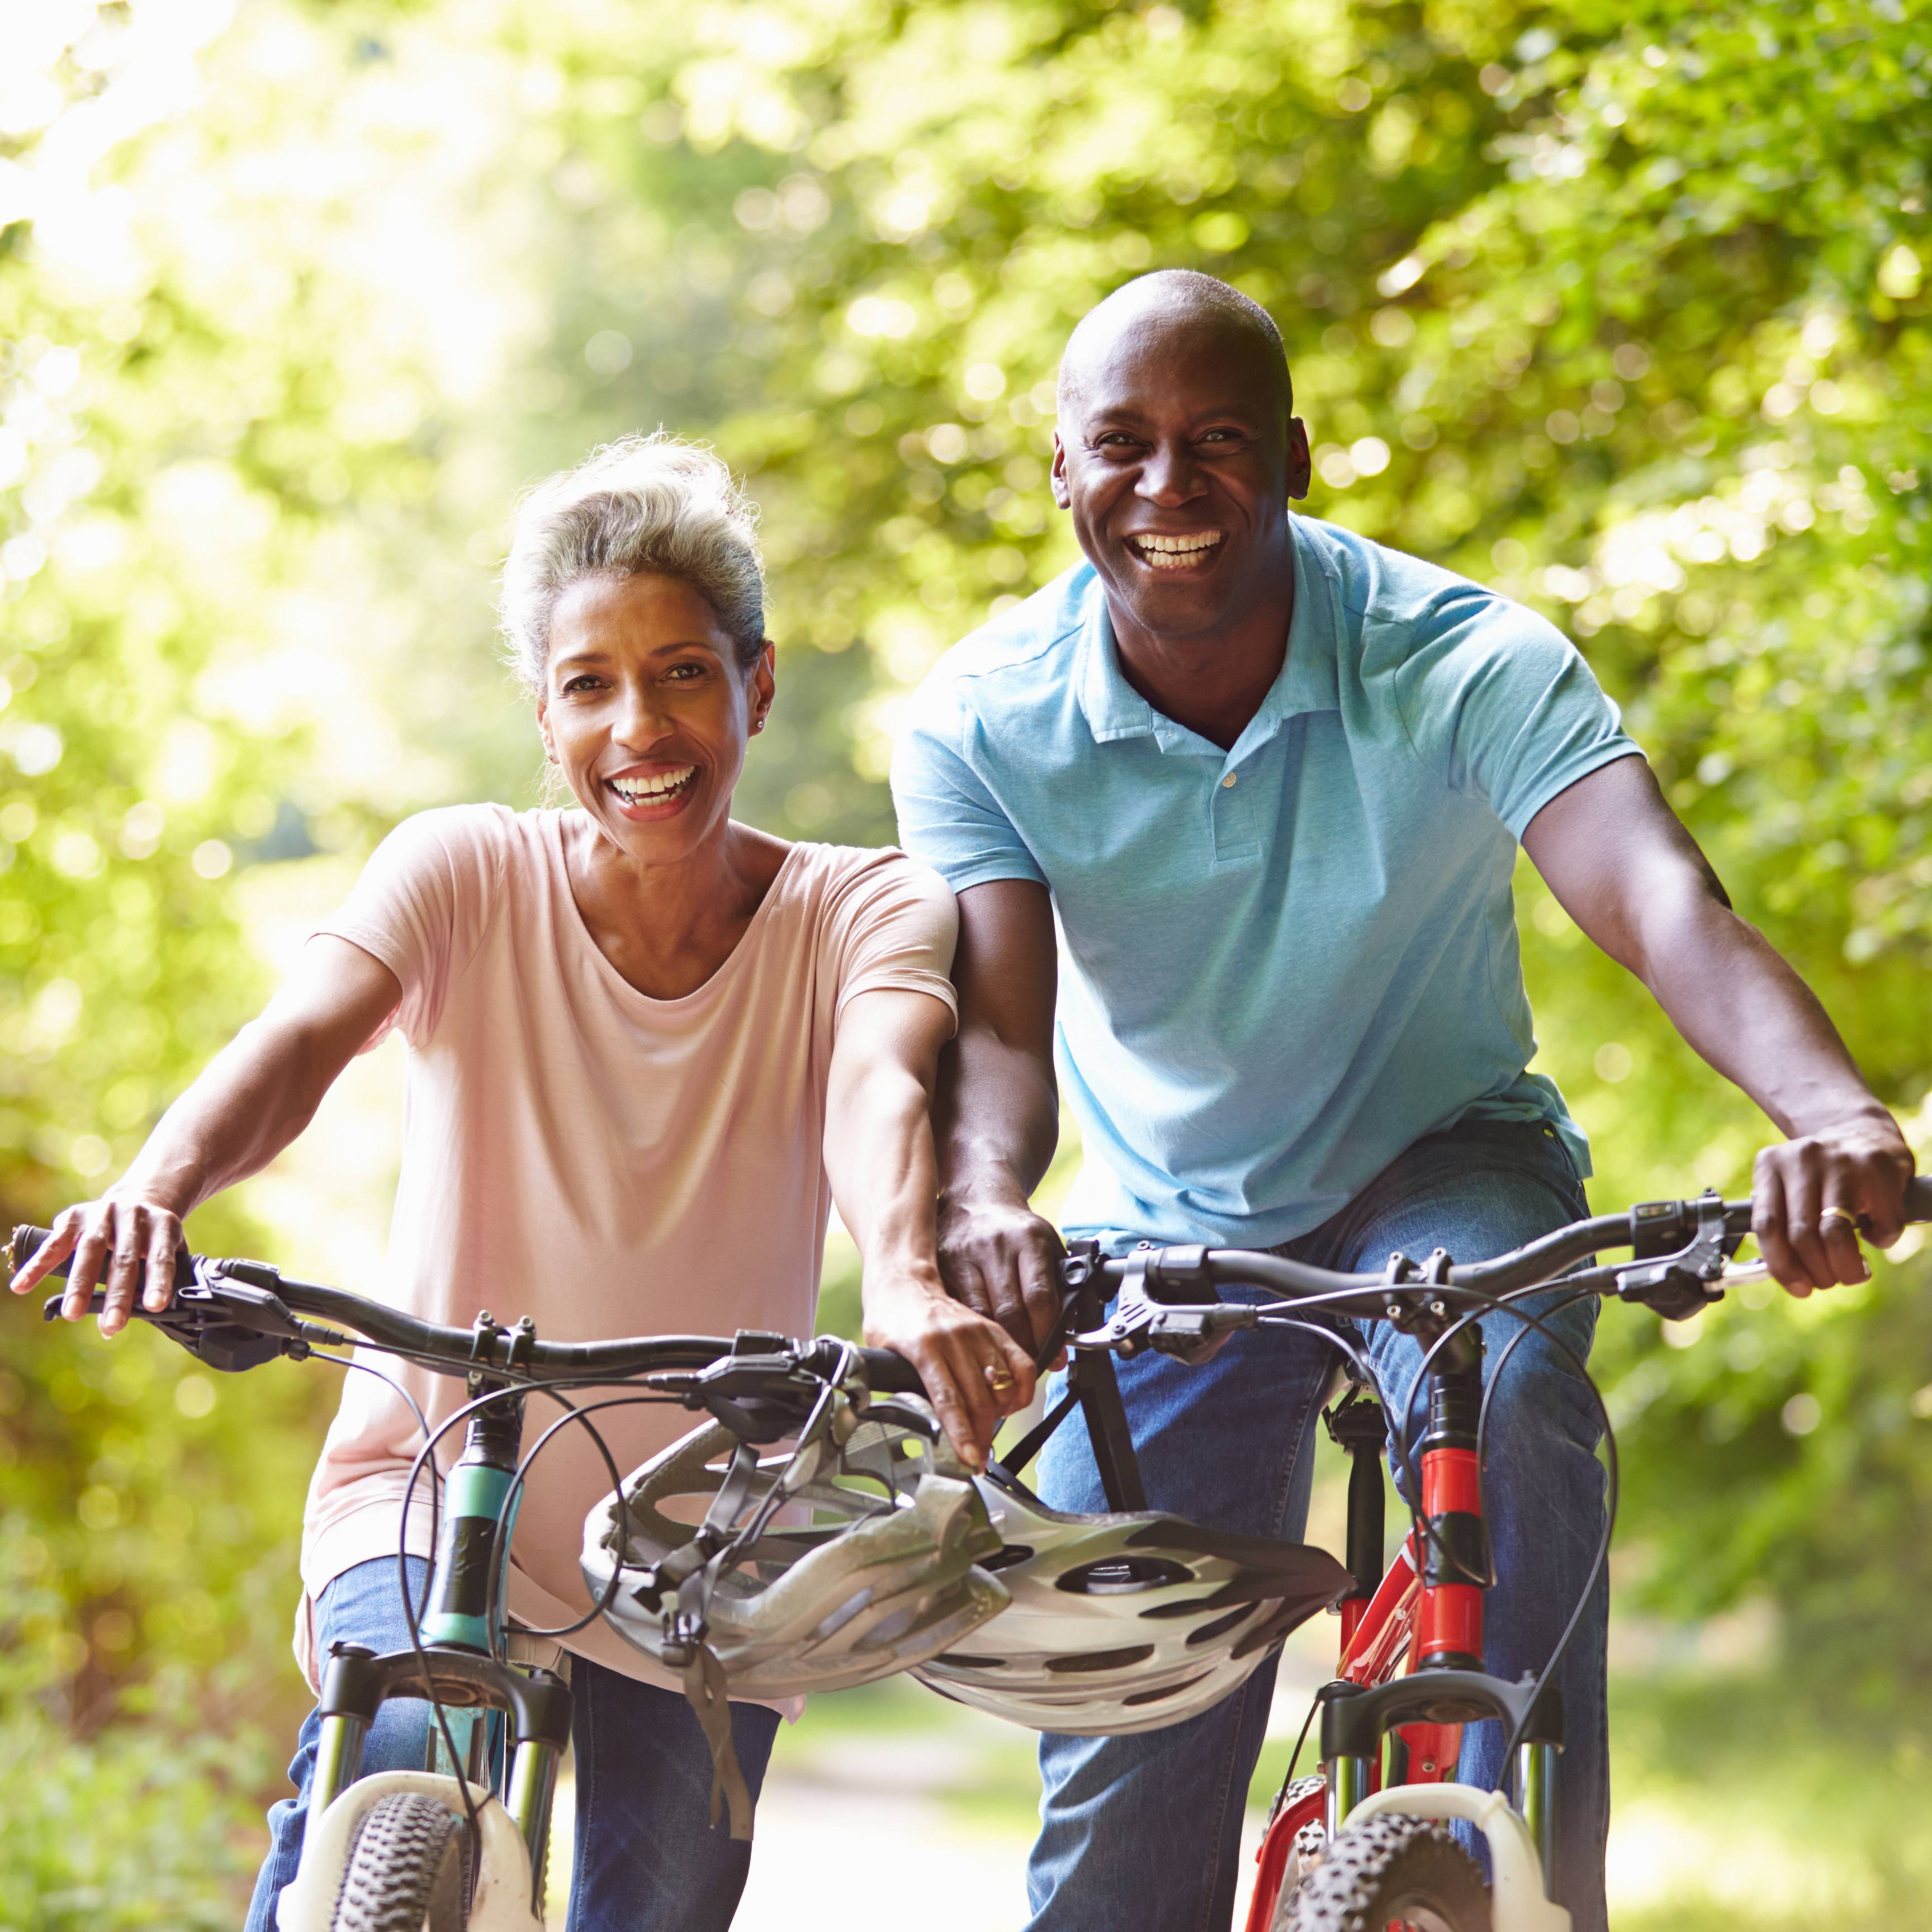 a smiling middle-aged couple on bicycles